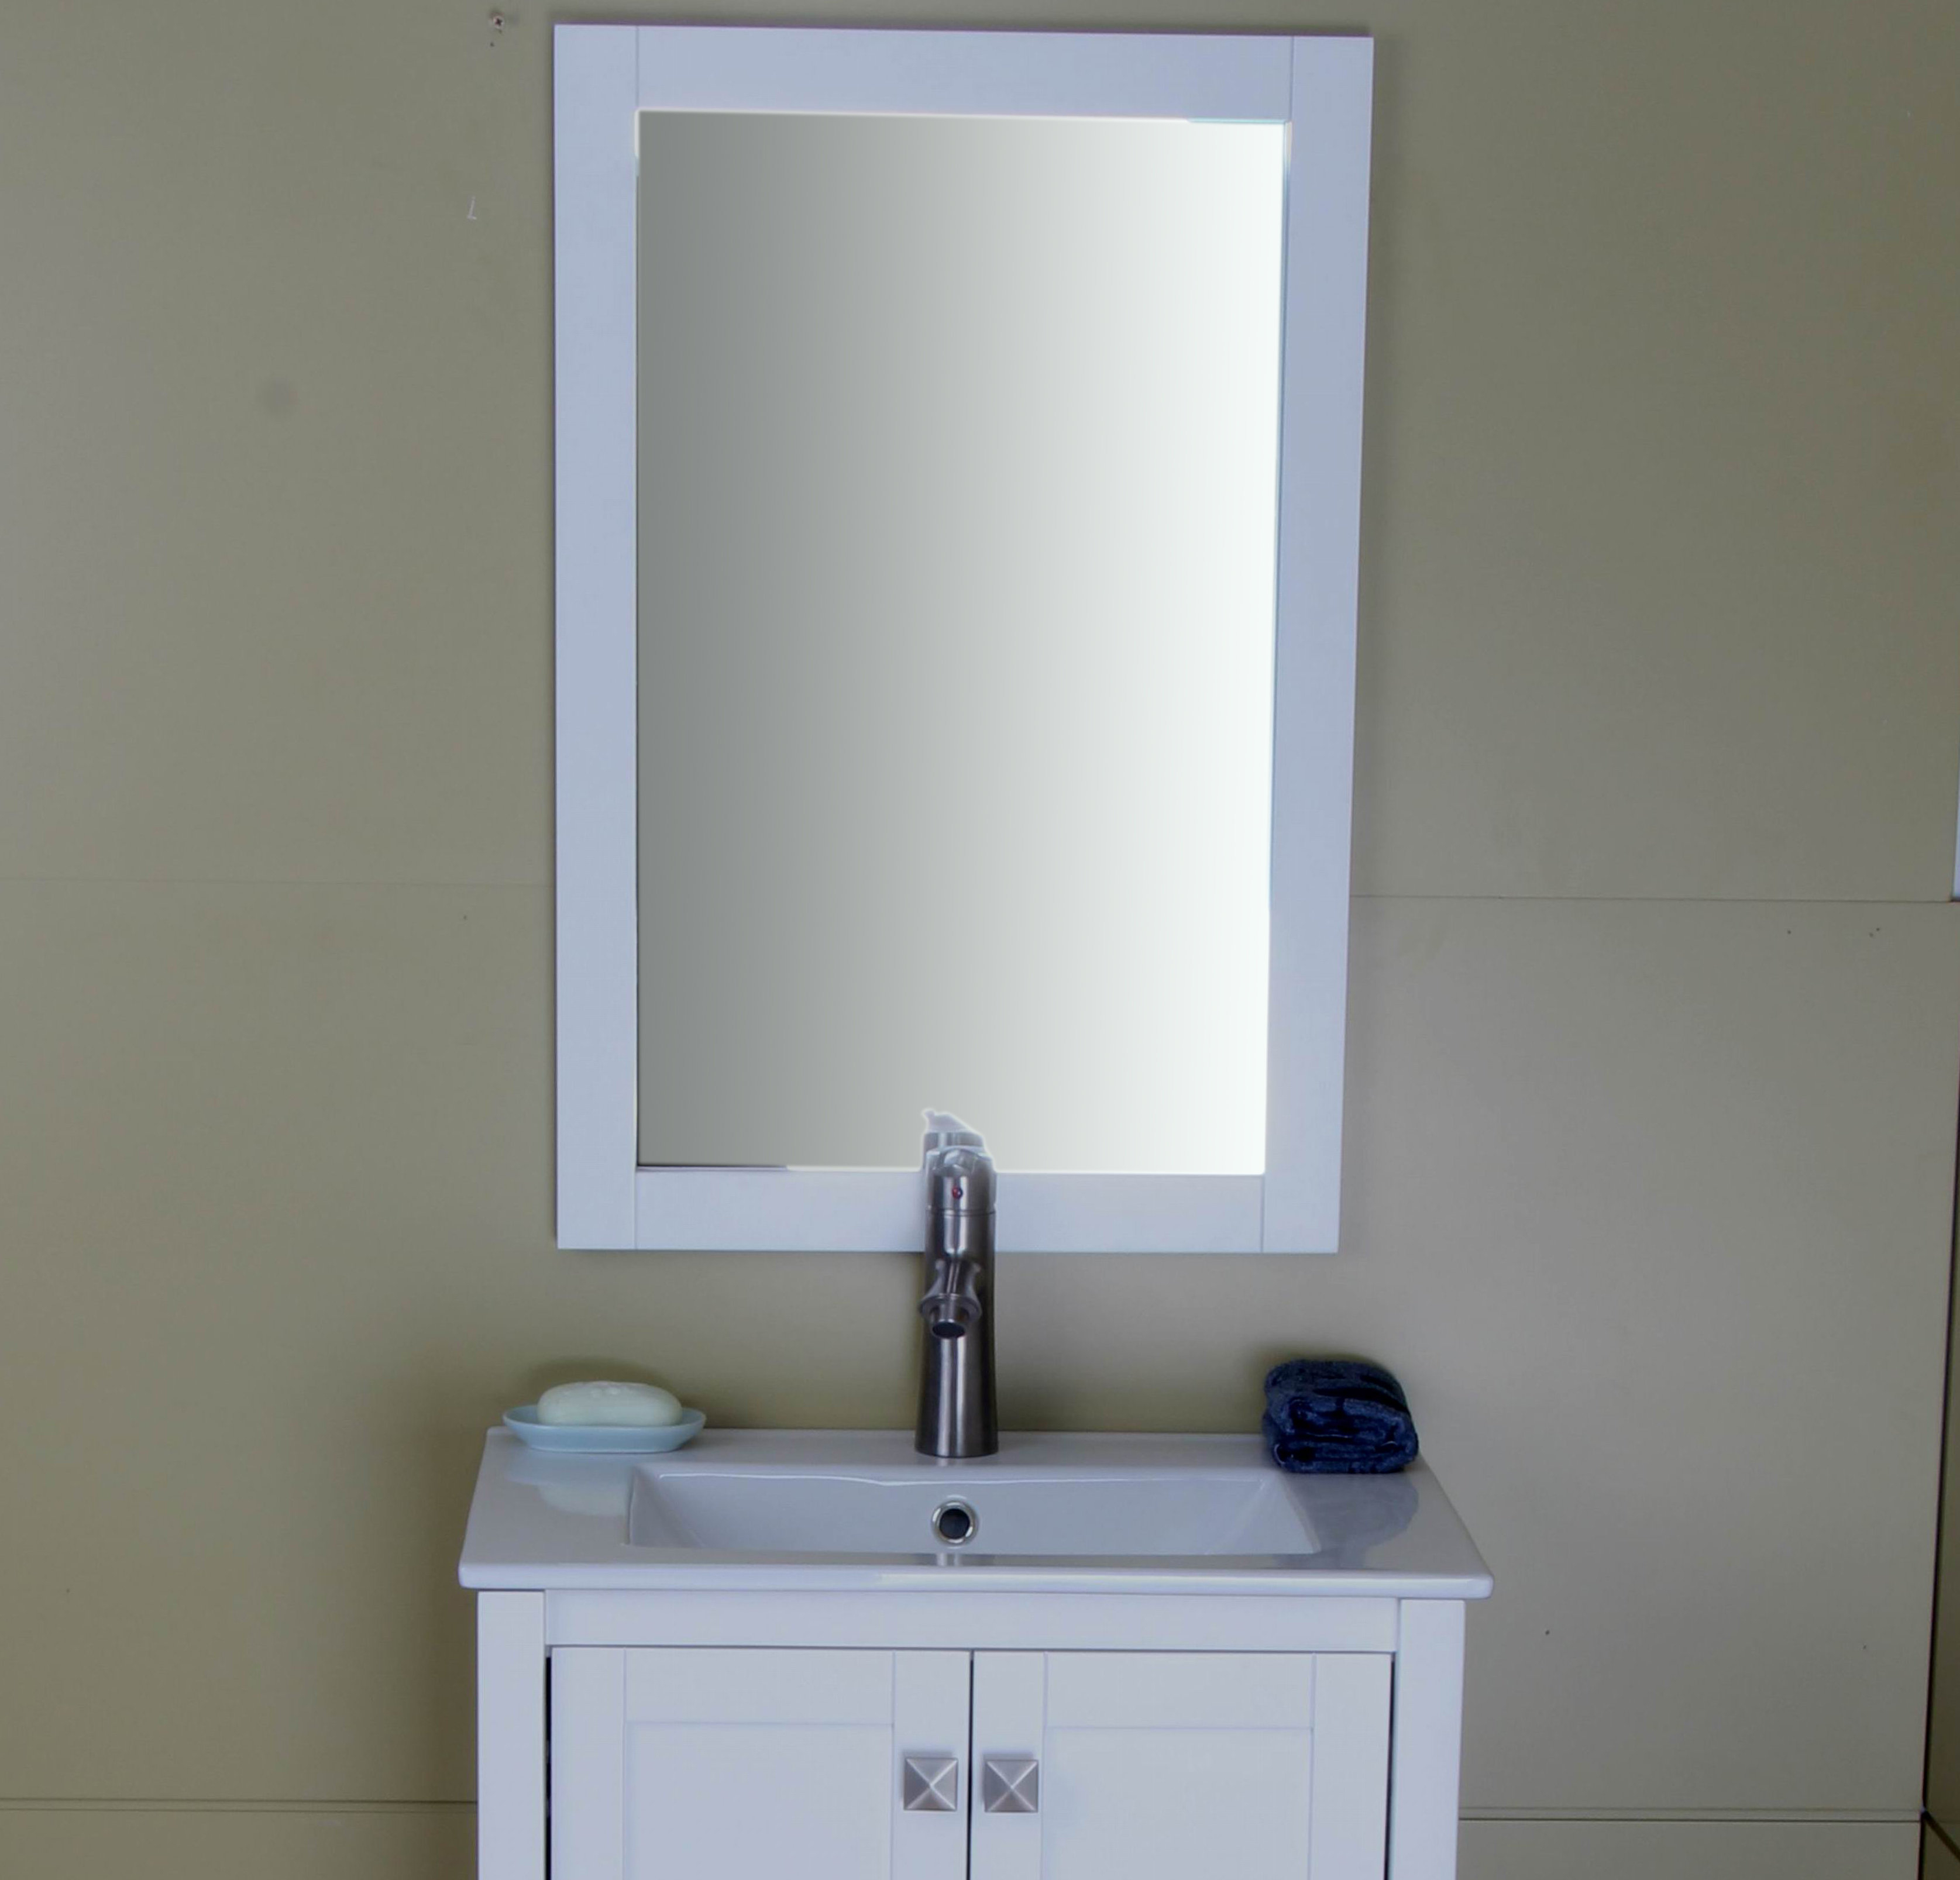 Chumley Bathroom/vanity Mirror Throughout Burgoyne Vanity Mirrors (View 11 of 20)